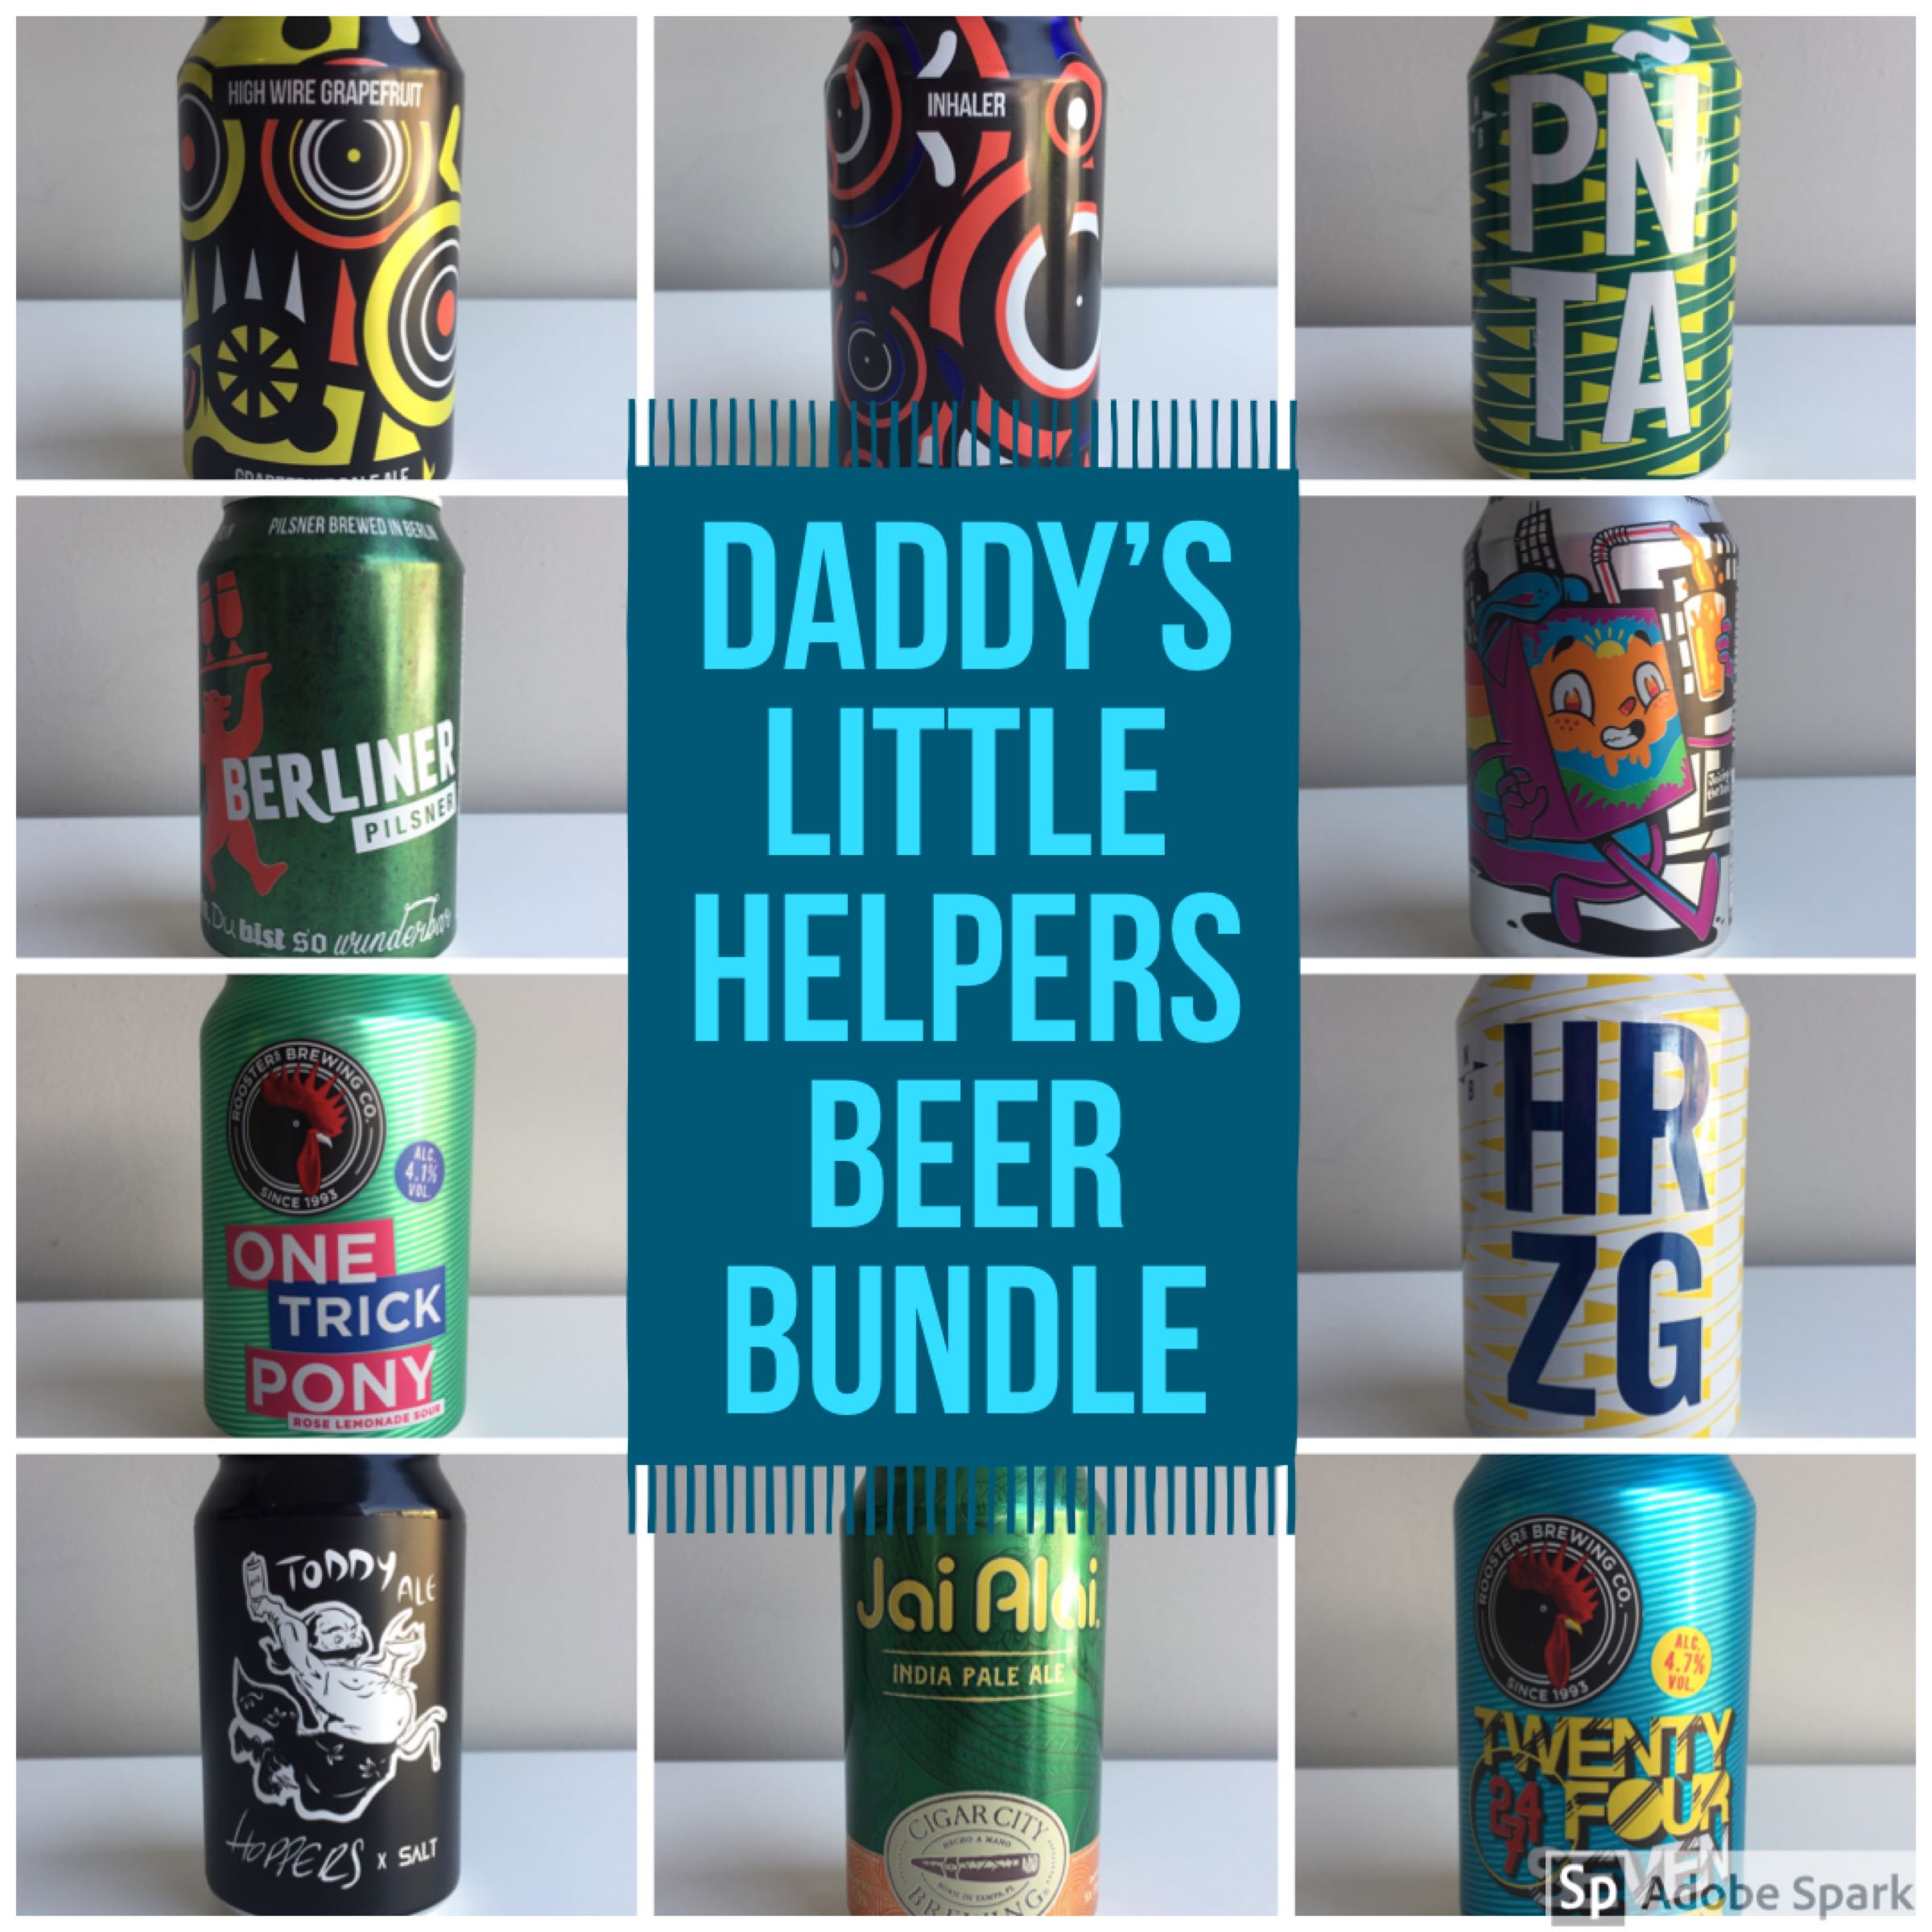 Daddy's little helpers - selection of 12 craft beers 330ml cans